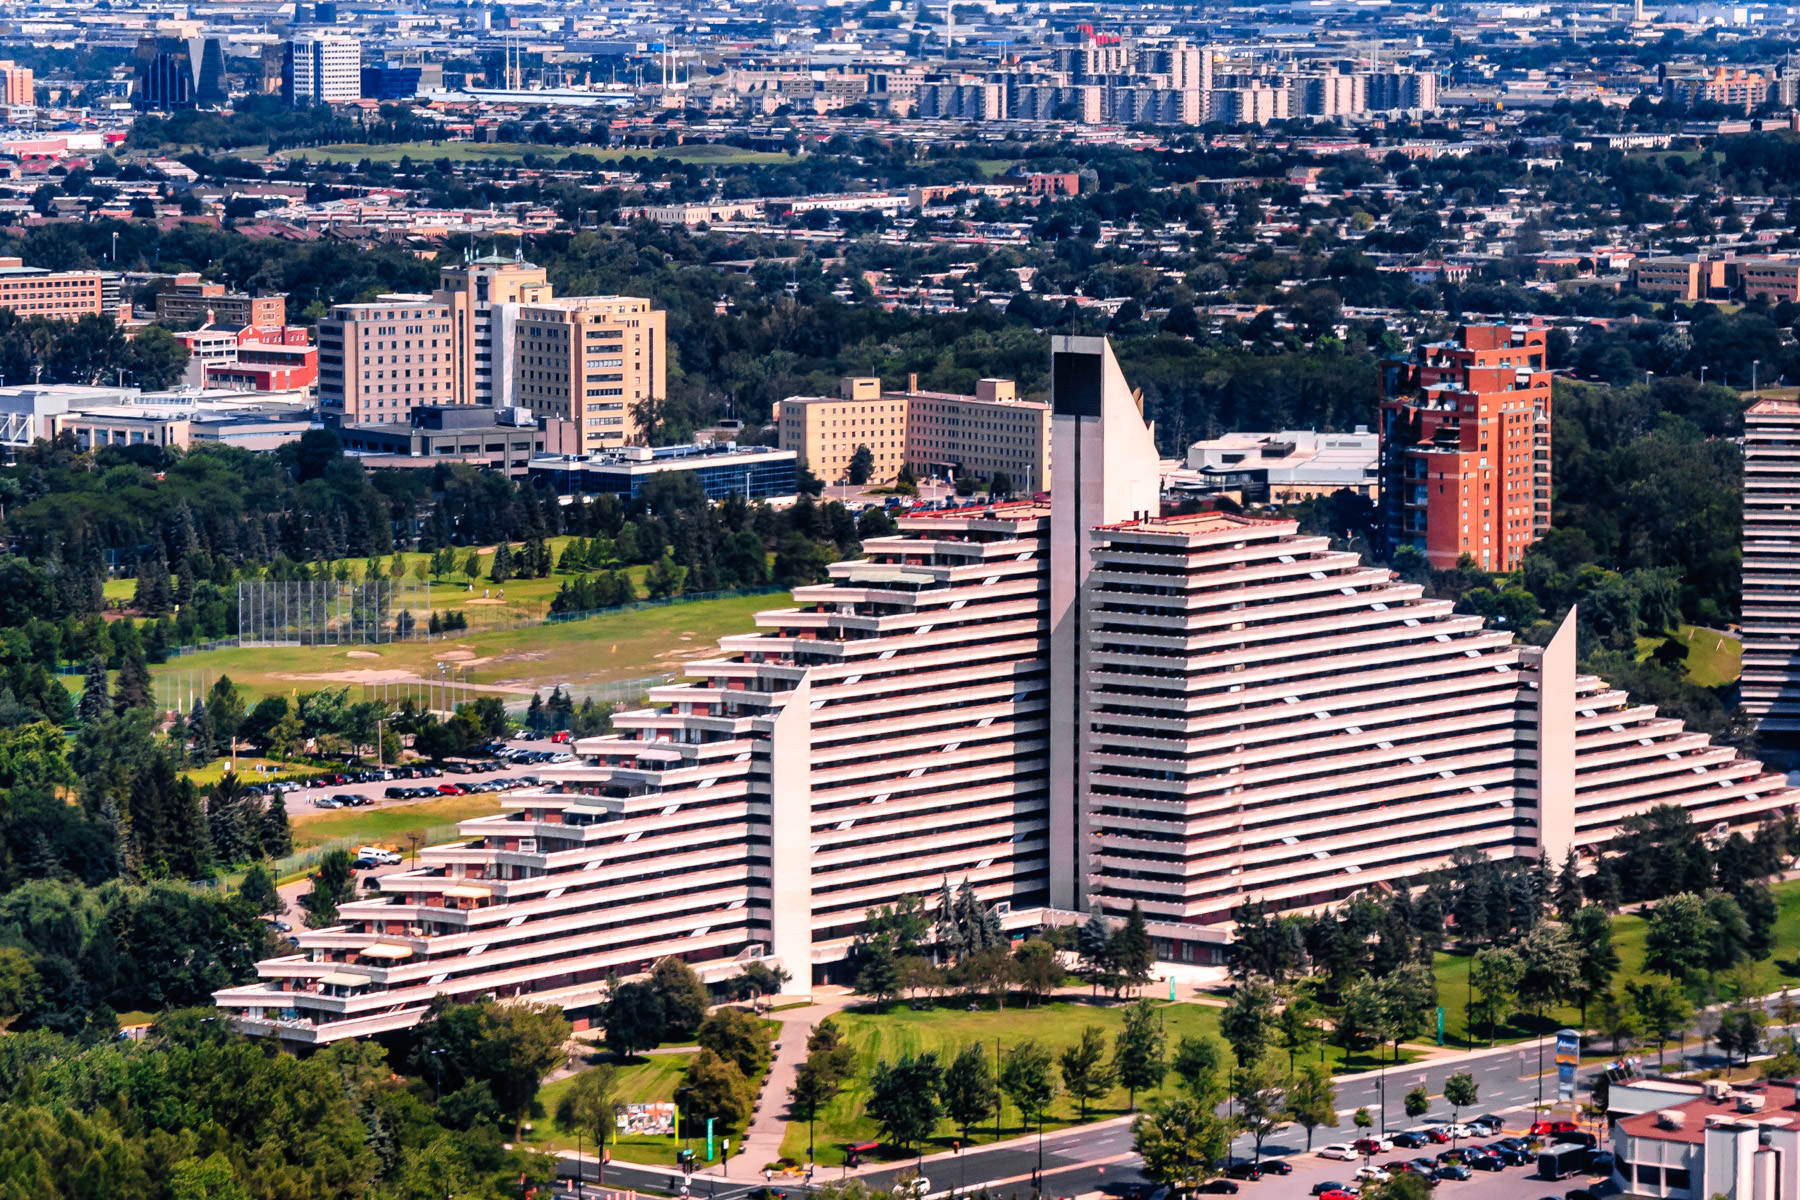 Montréal's Olympic Village, built for the 1976 Olympics.